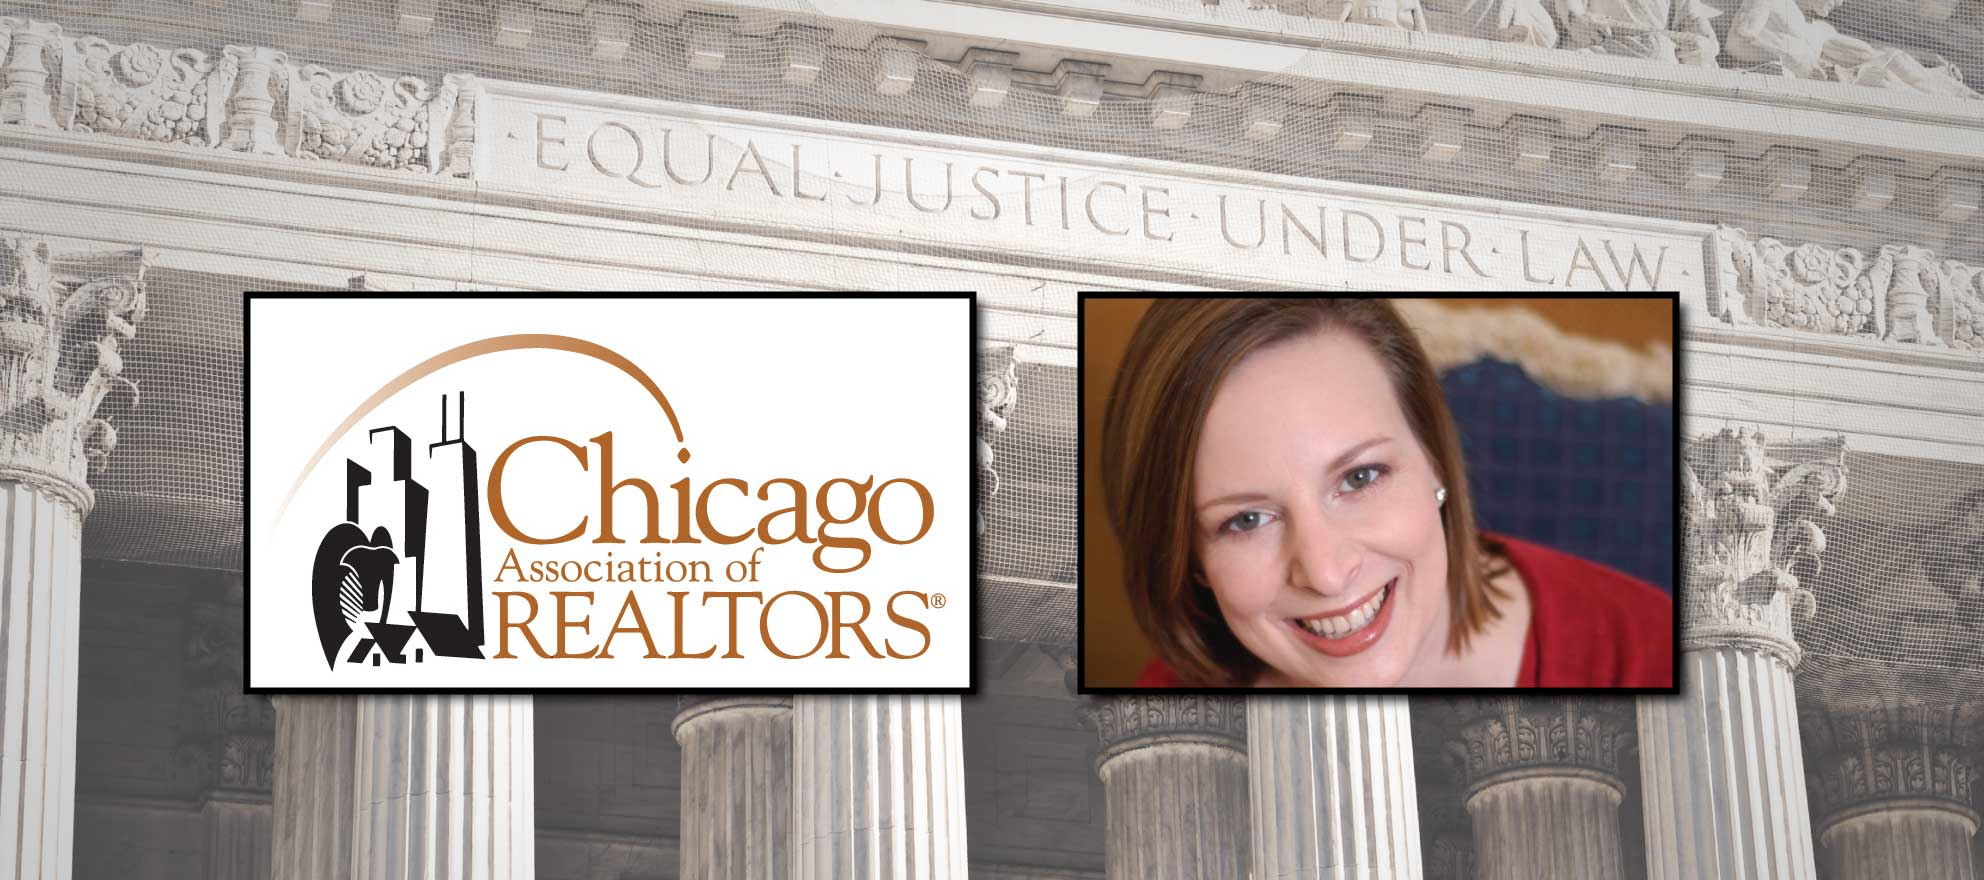 Realtor association's defamation suit against member headed to trial